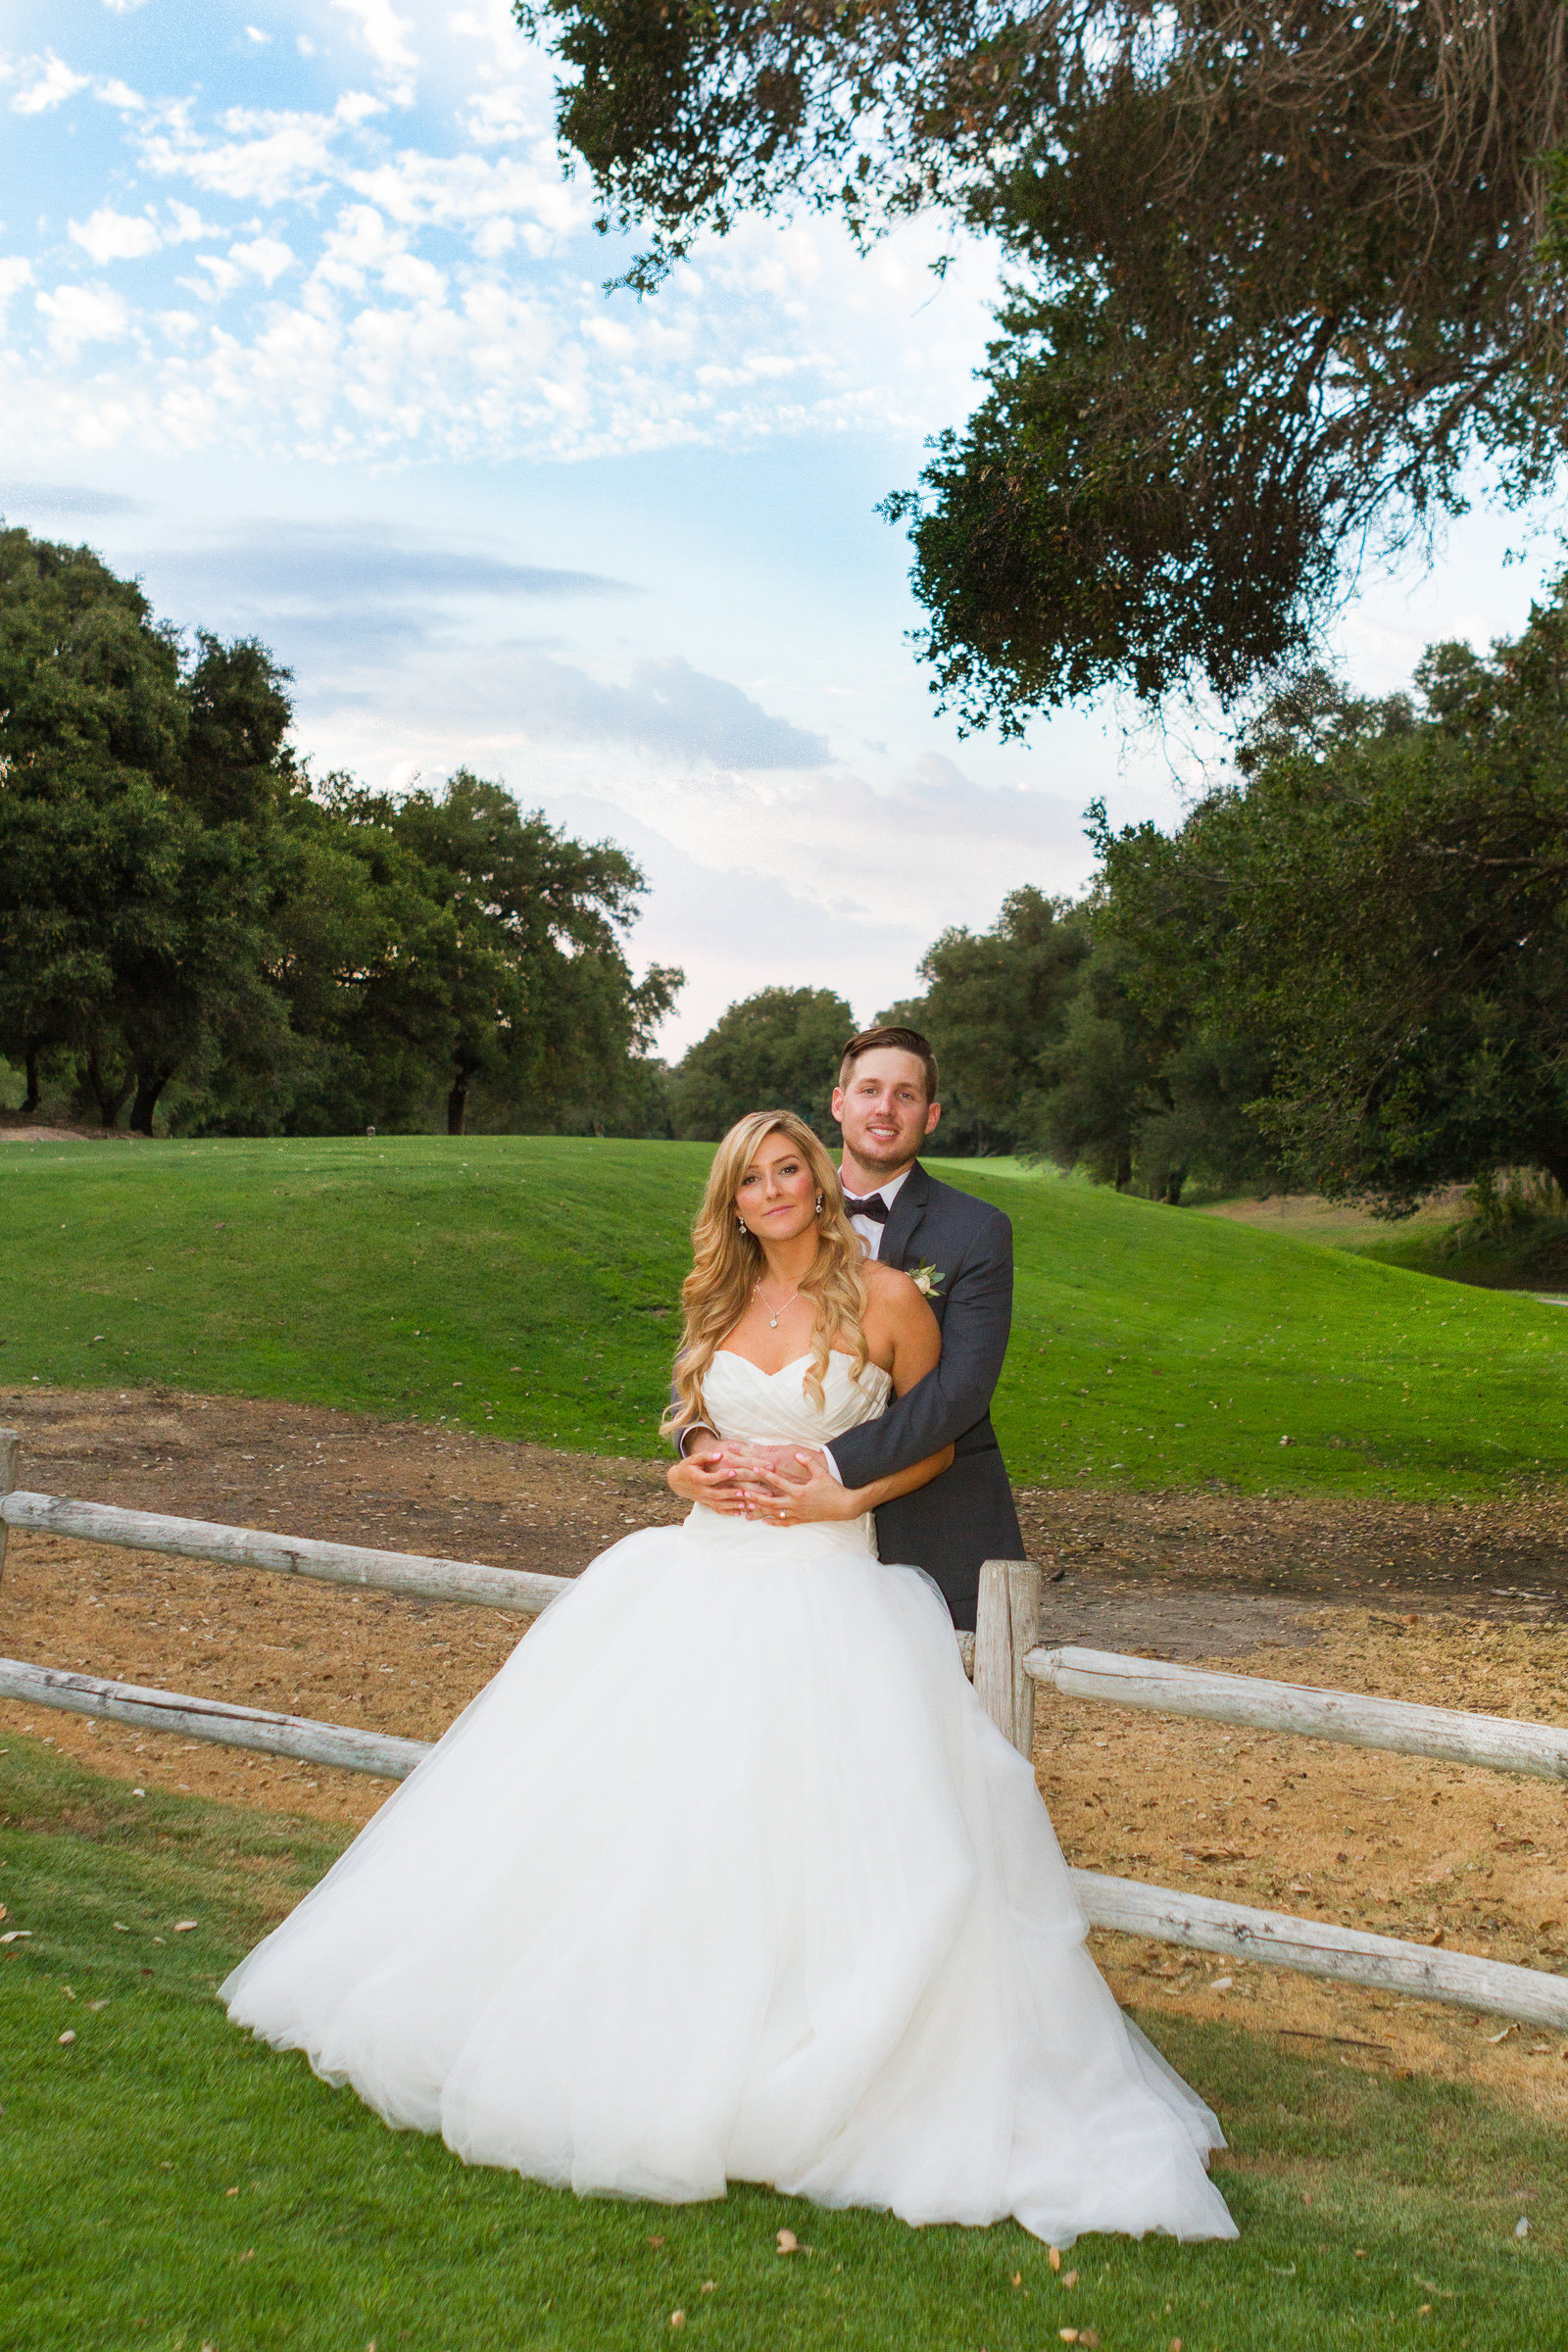 65-Temecula Wedding Pictures-Temecula Creek Inn_